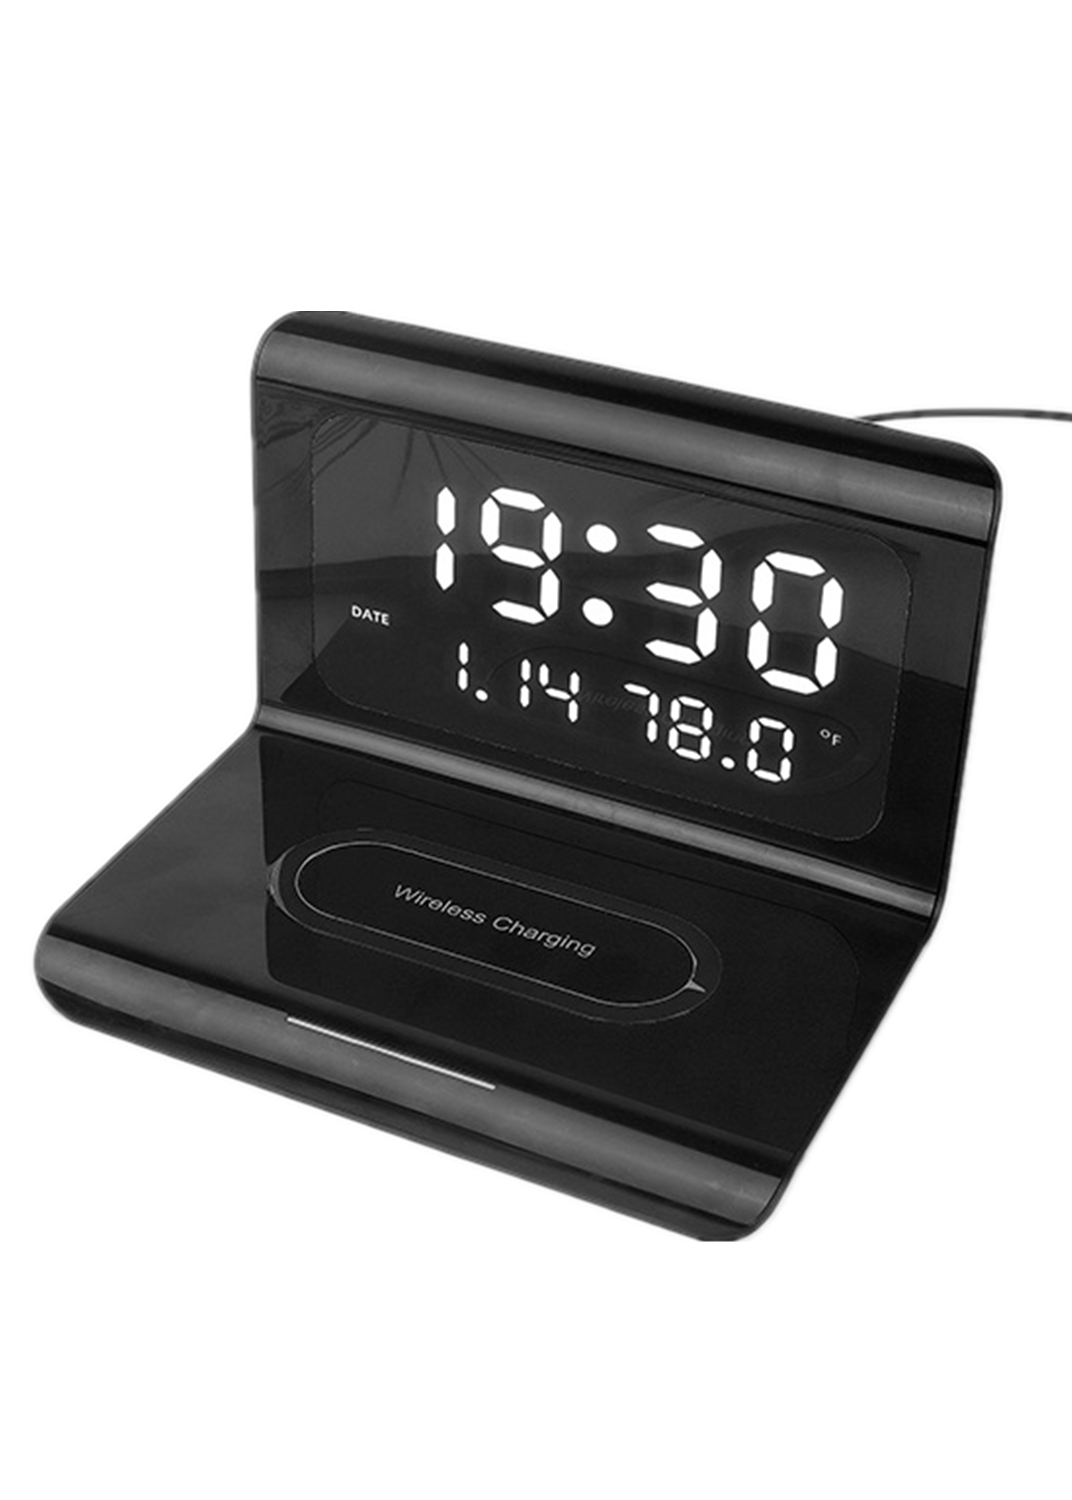 EB-CH13 Alarm wireless charger